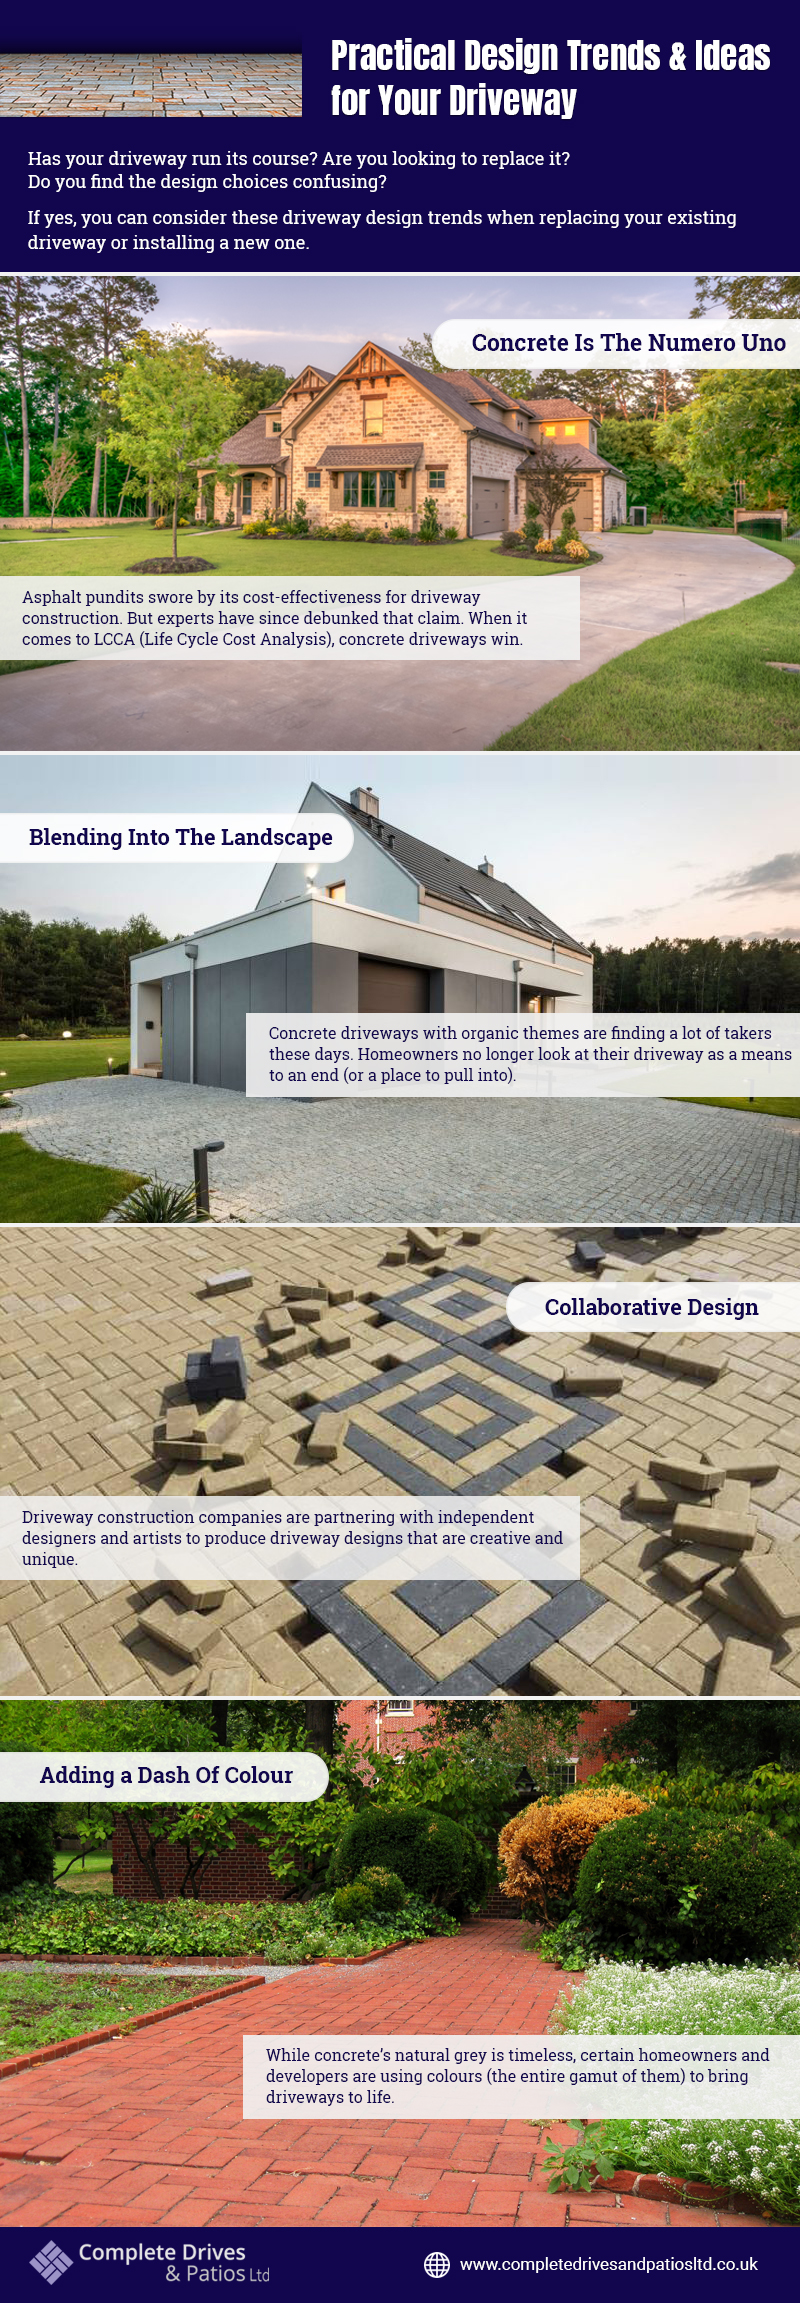 Practical-Design-Trends-&-Ideas-for-Your-Driveway